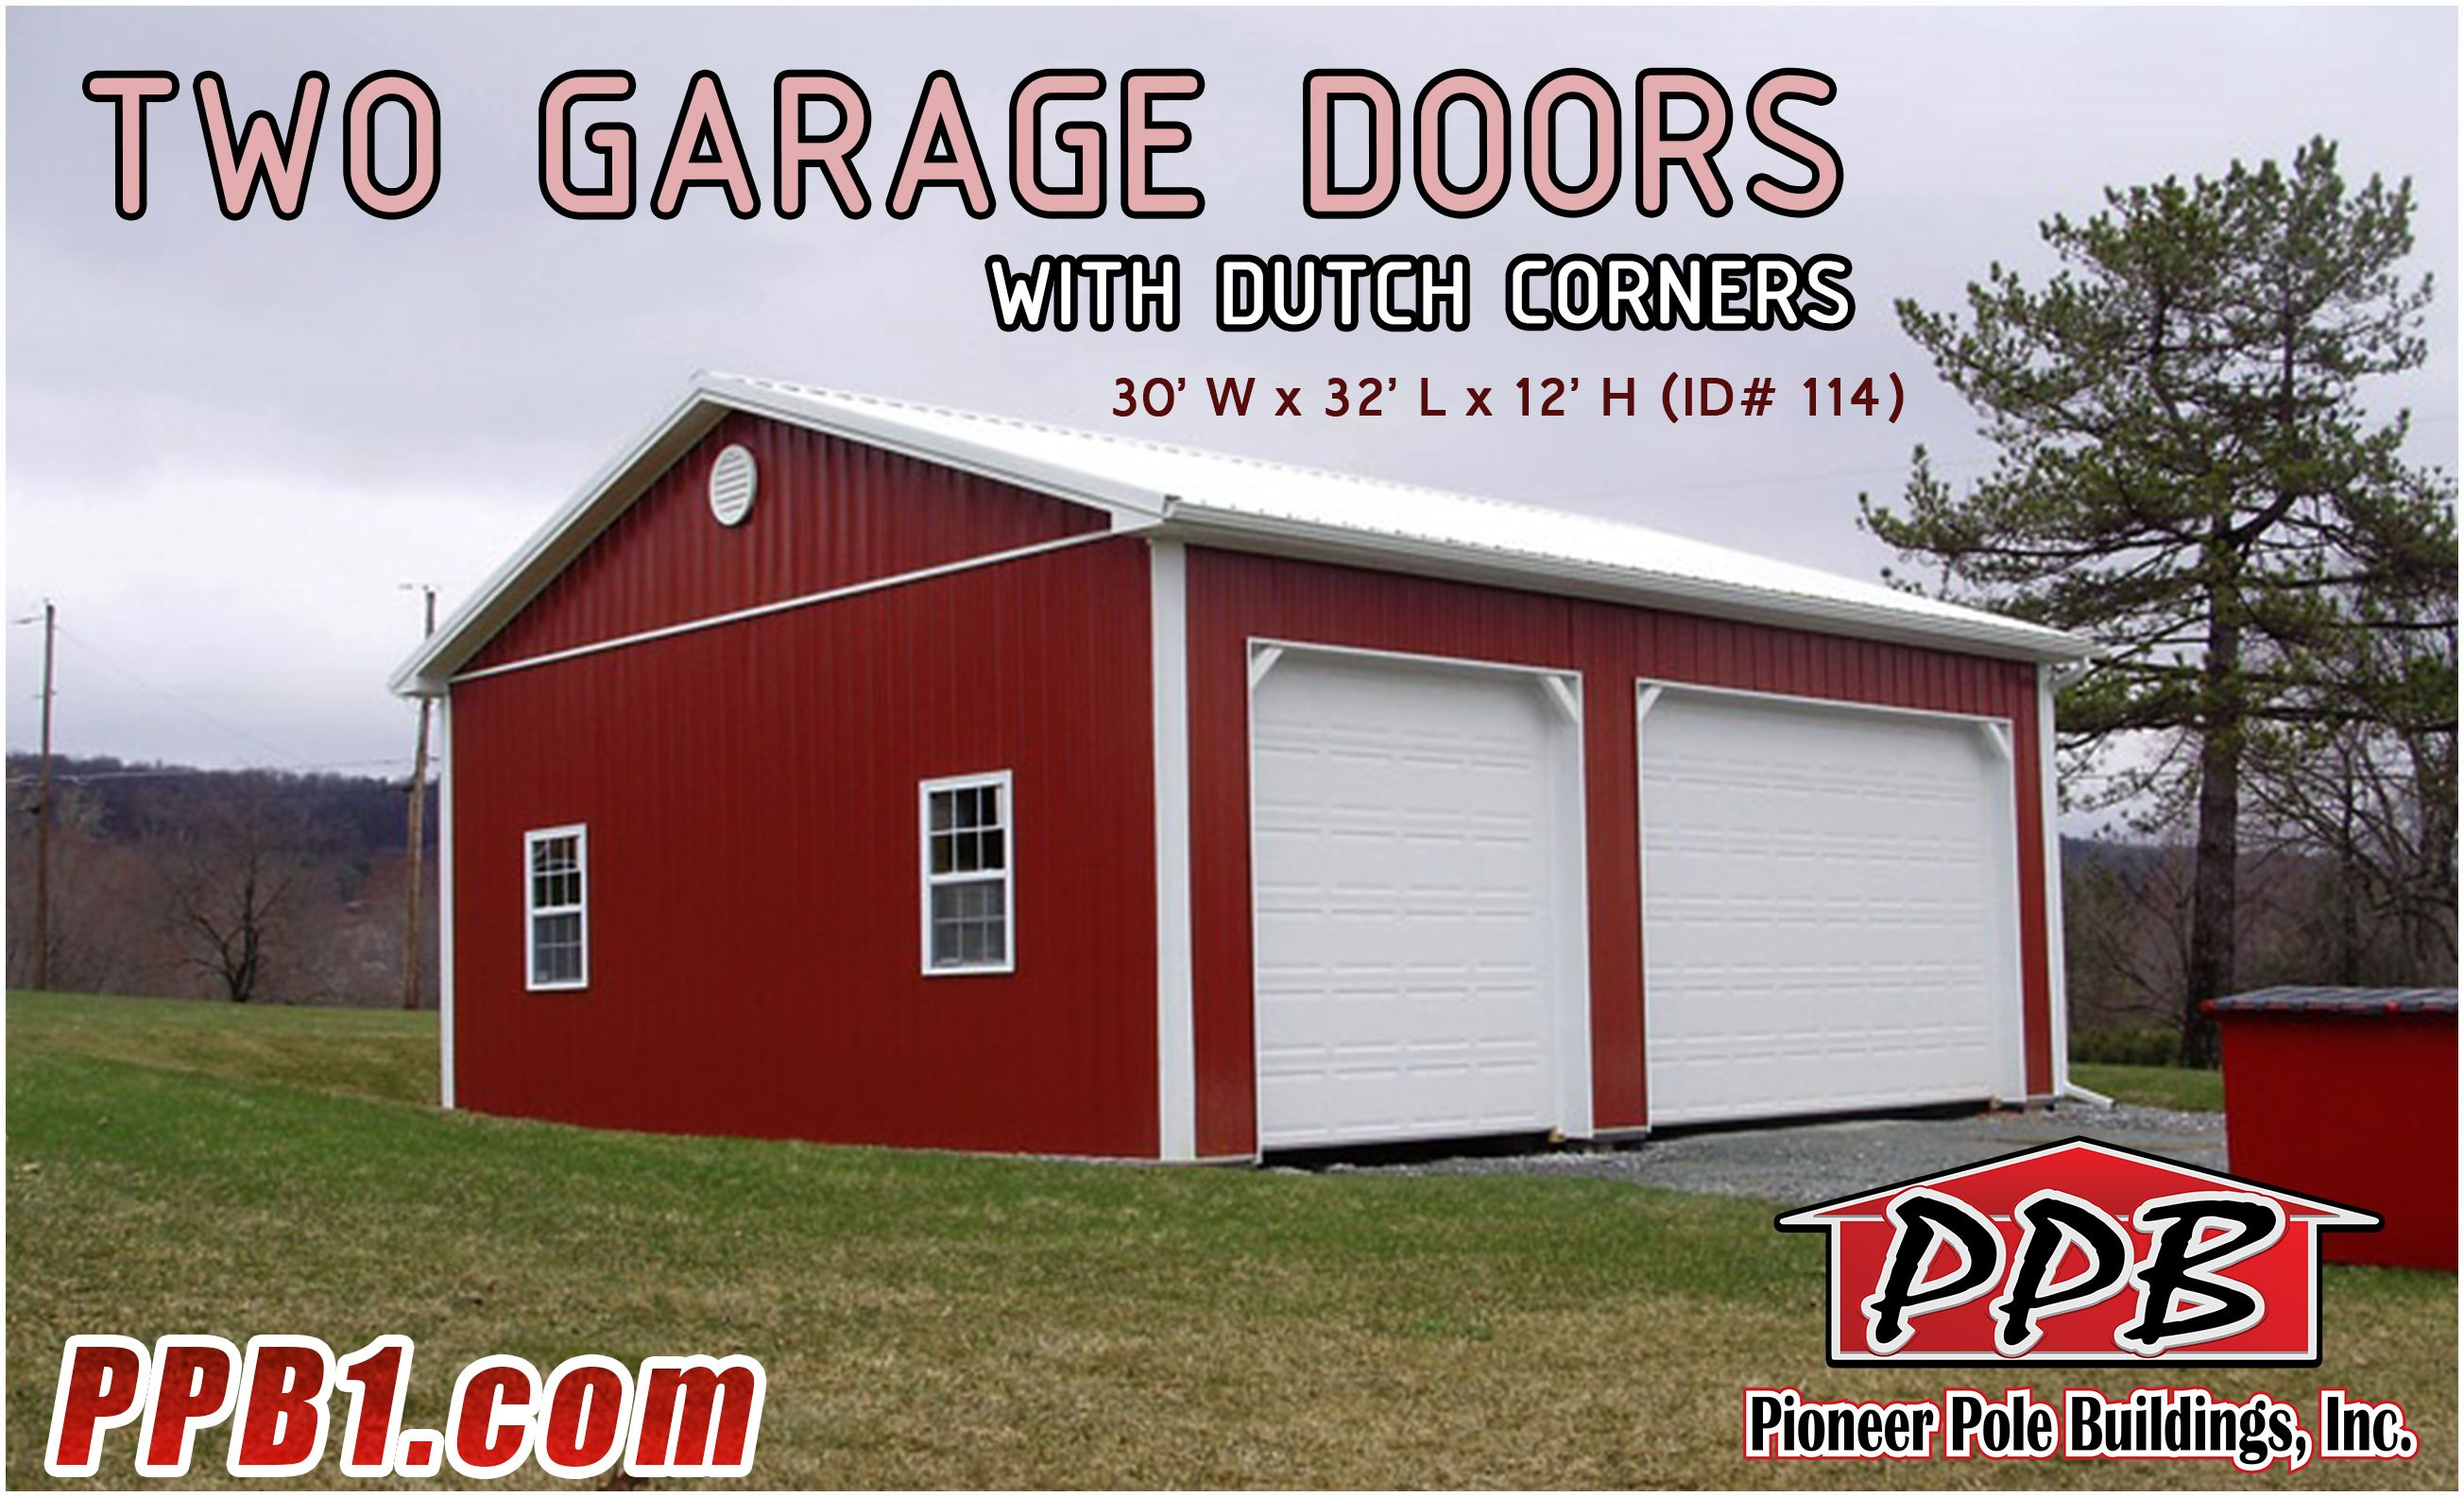 Two Garage Doors With Dutch Corners Dimensions 30 W X 32 L X 12 H 30 Standard Trusses 4 On Center Residential Garage Doors Pole Buildings Garage Design